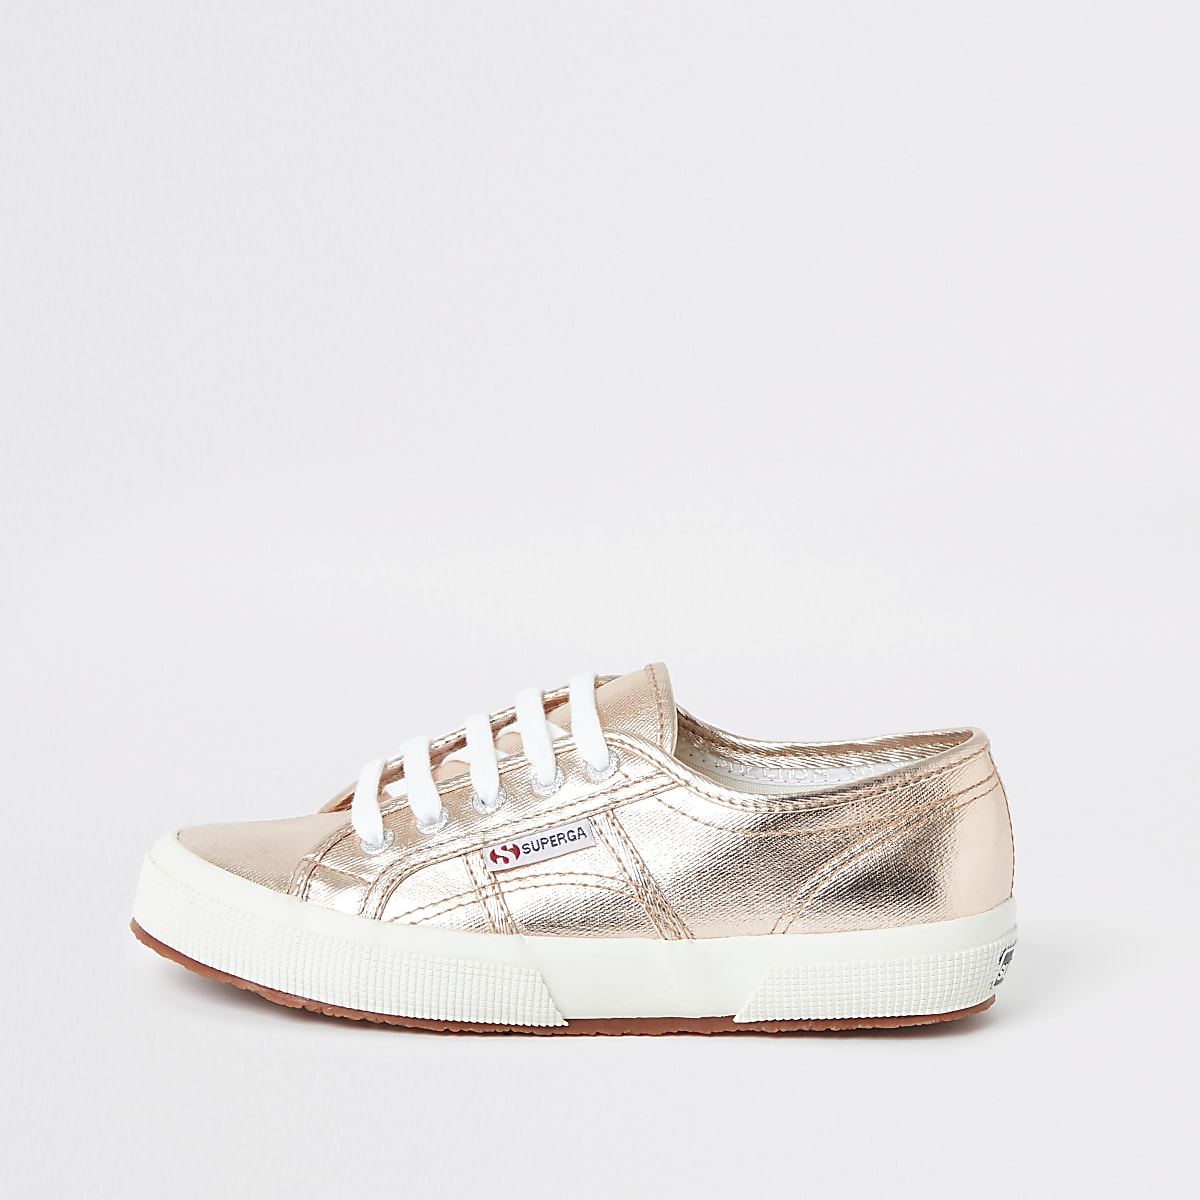 Superga gold lace-up trainers